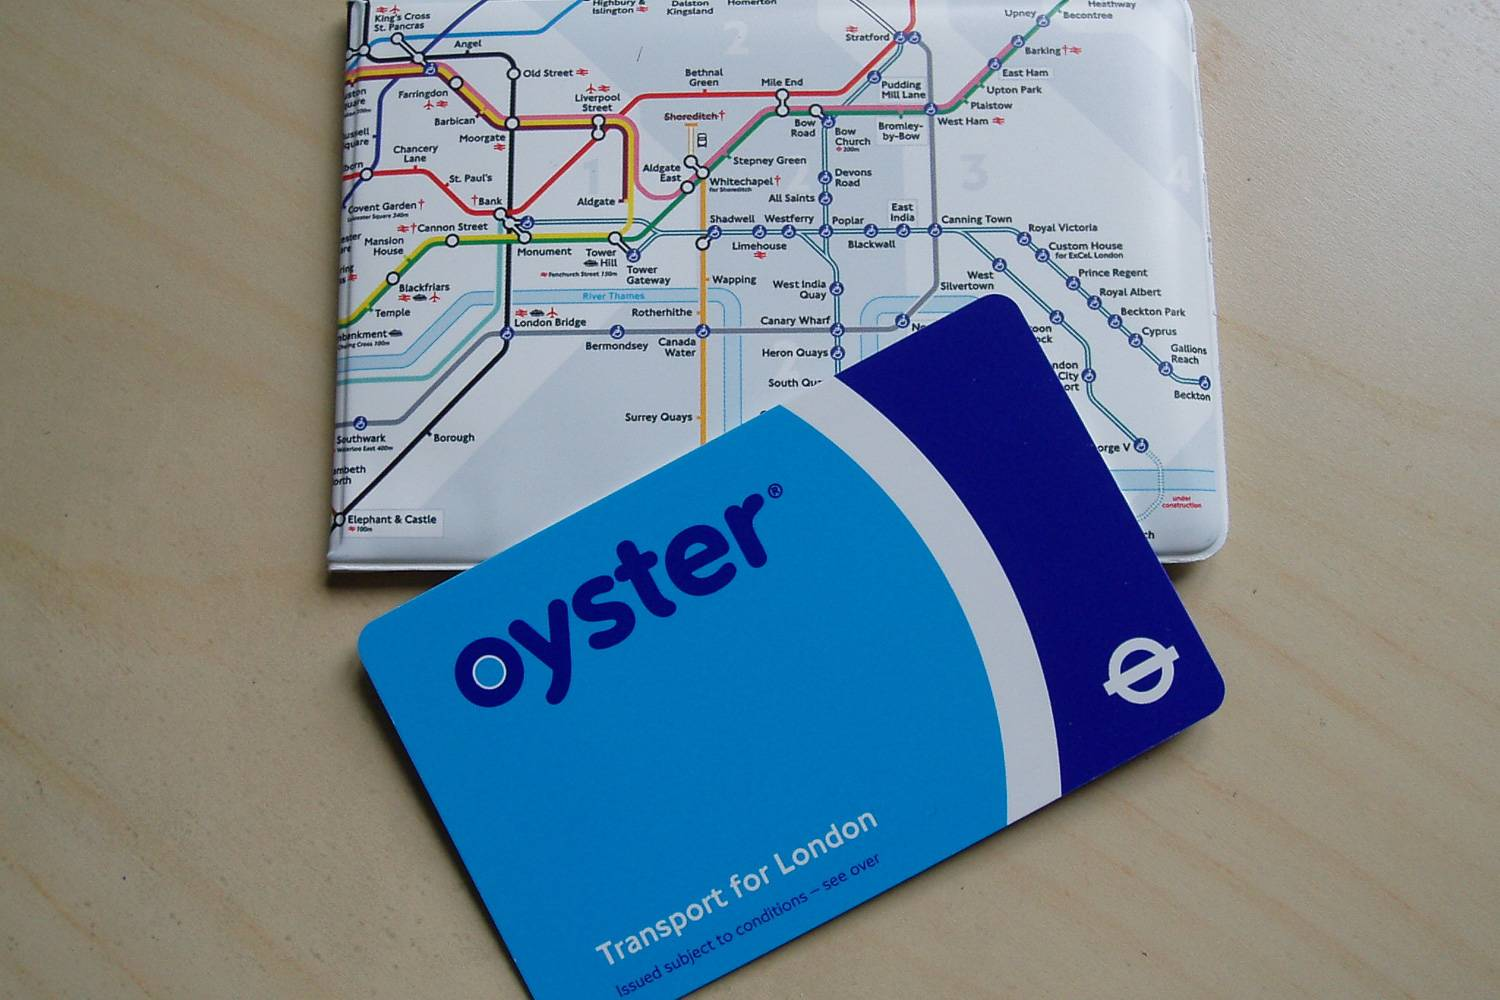 Image of a blue London Oyster card with a carrying case decorated with a map of the Underground.